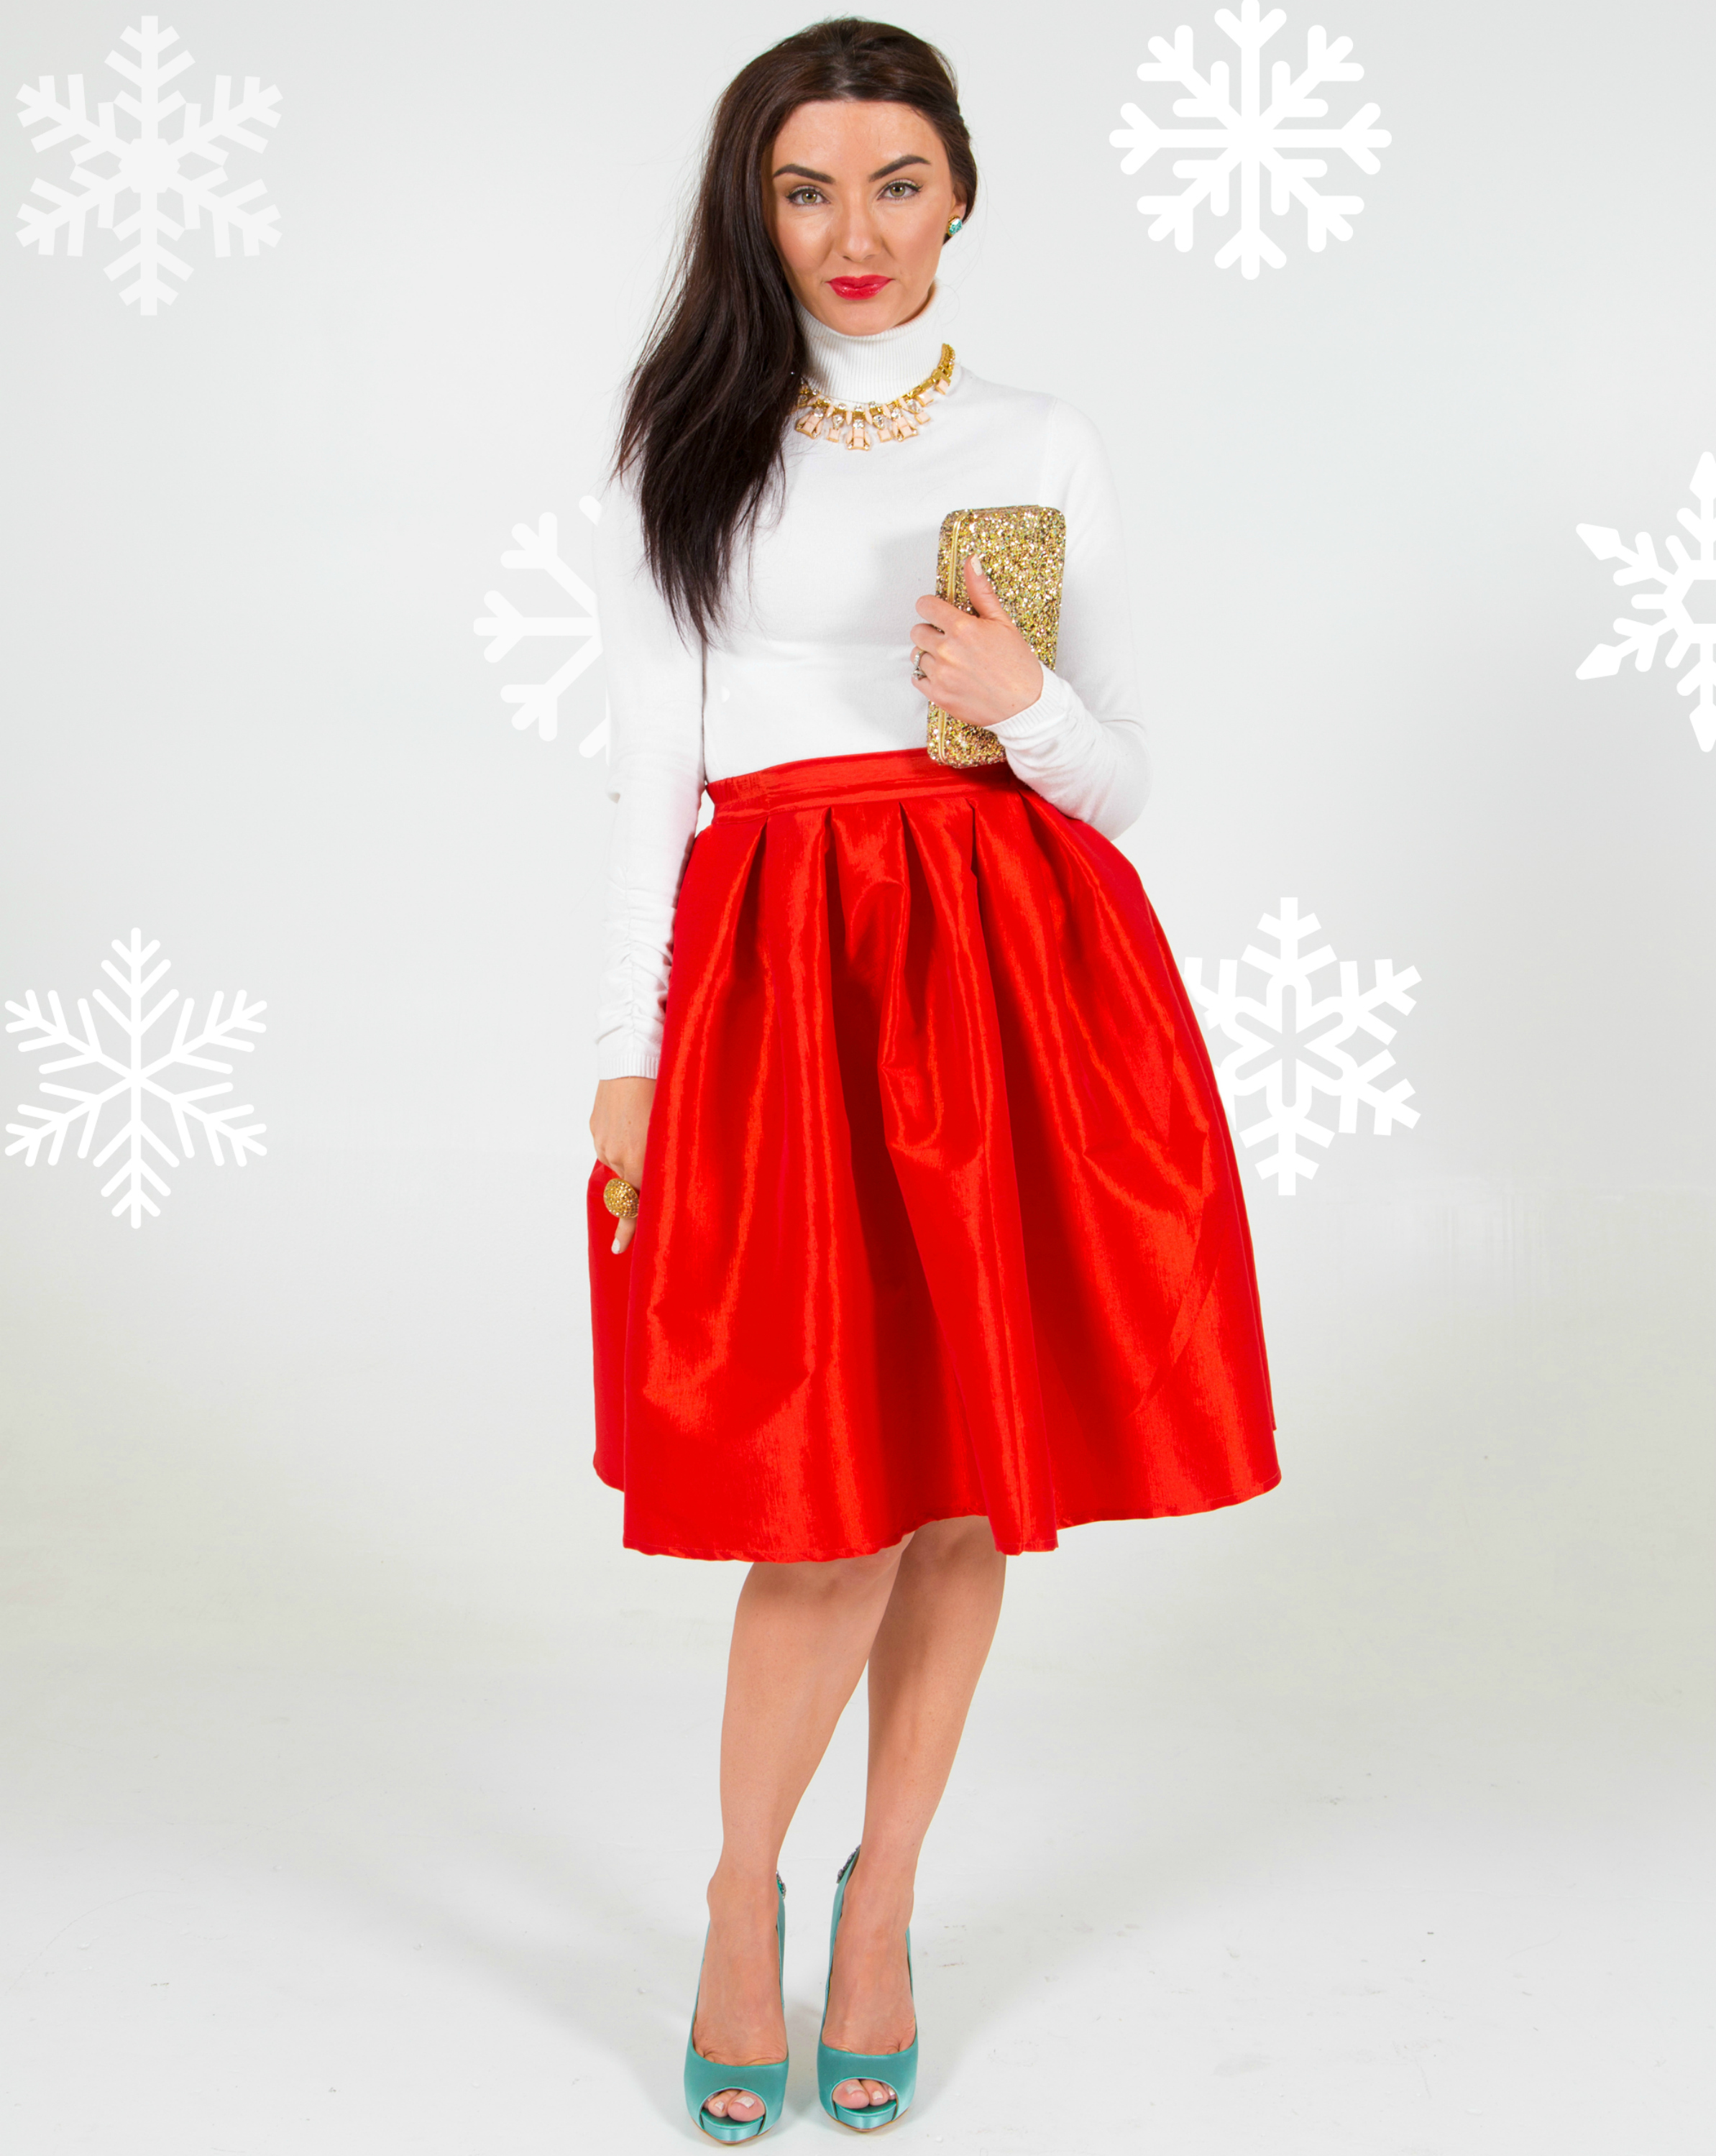 Kate Spade Christmas glitter holiday outfit